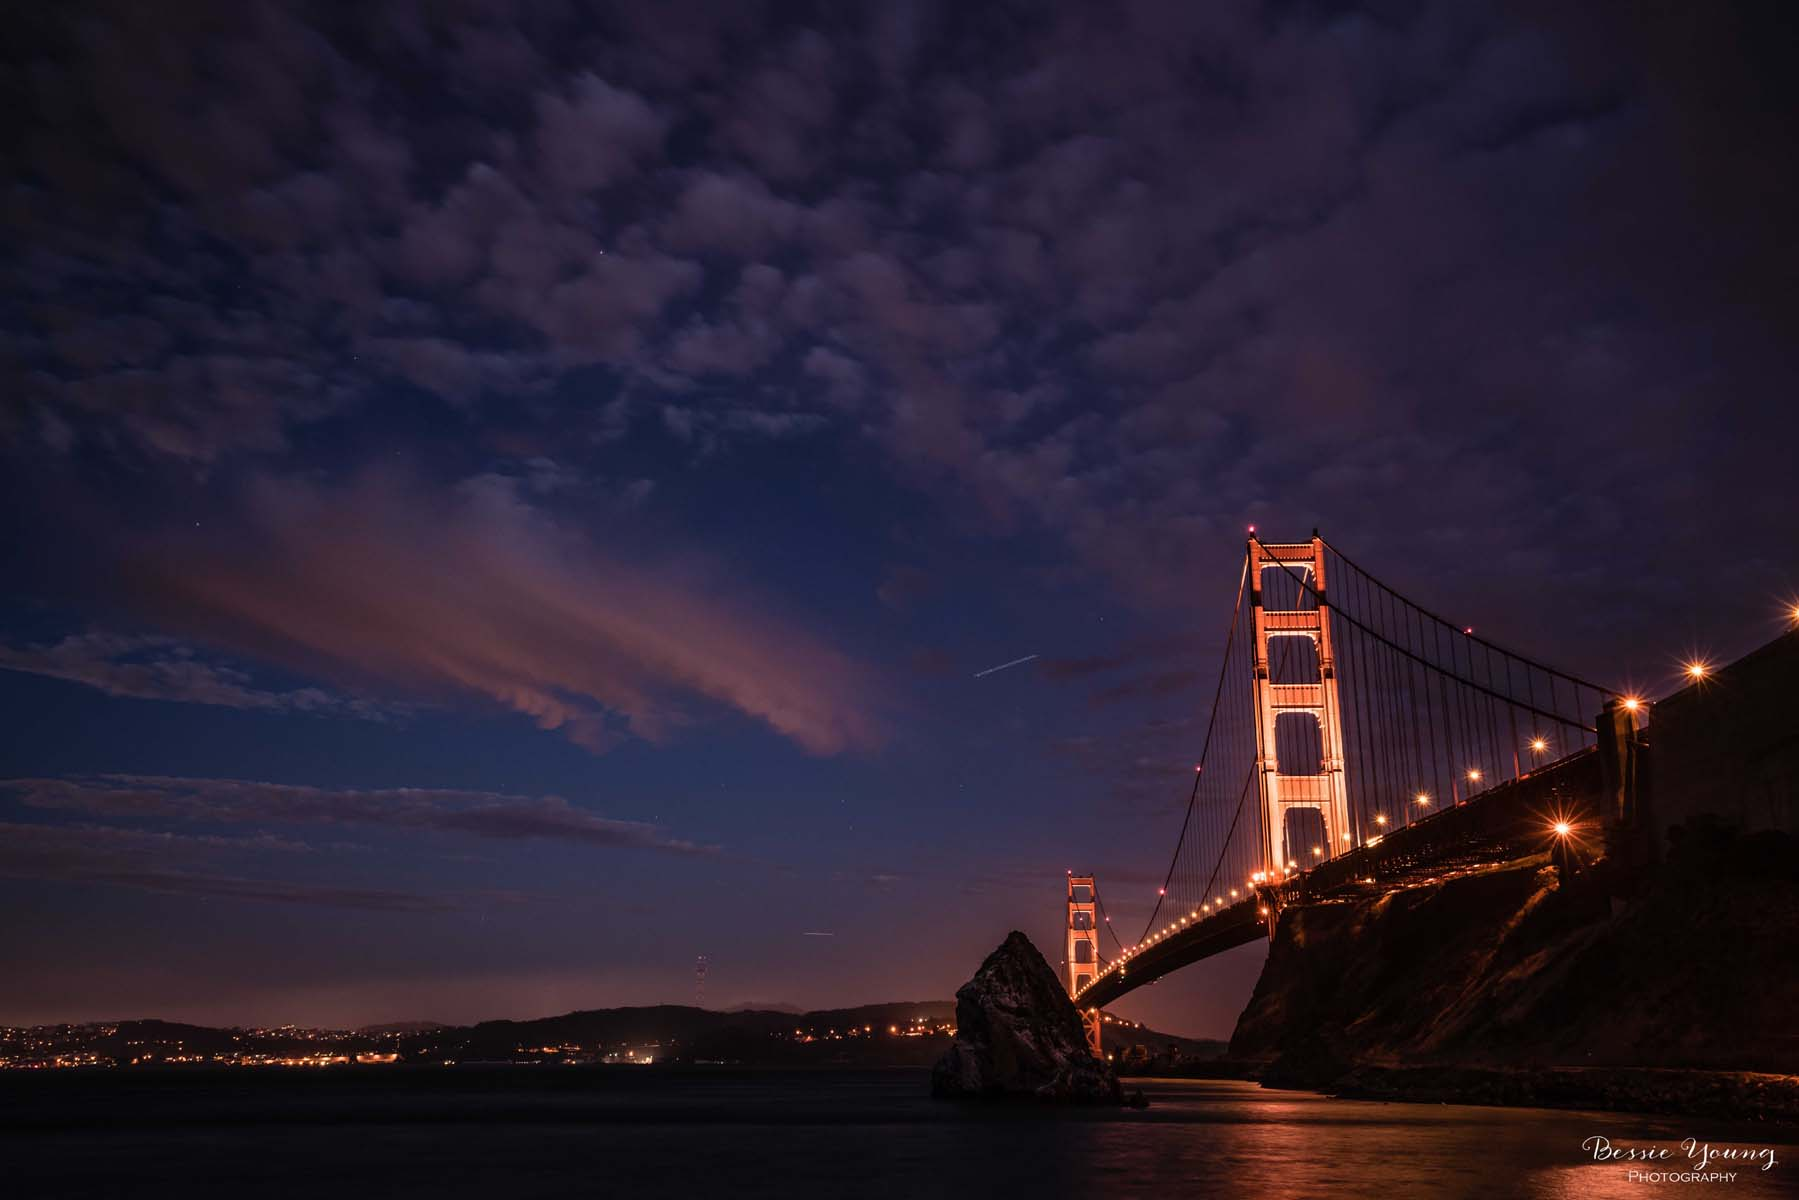 San Francisco 2016 - Bessie Young Photography-127.jpg